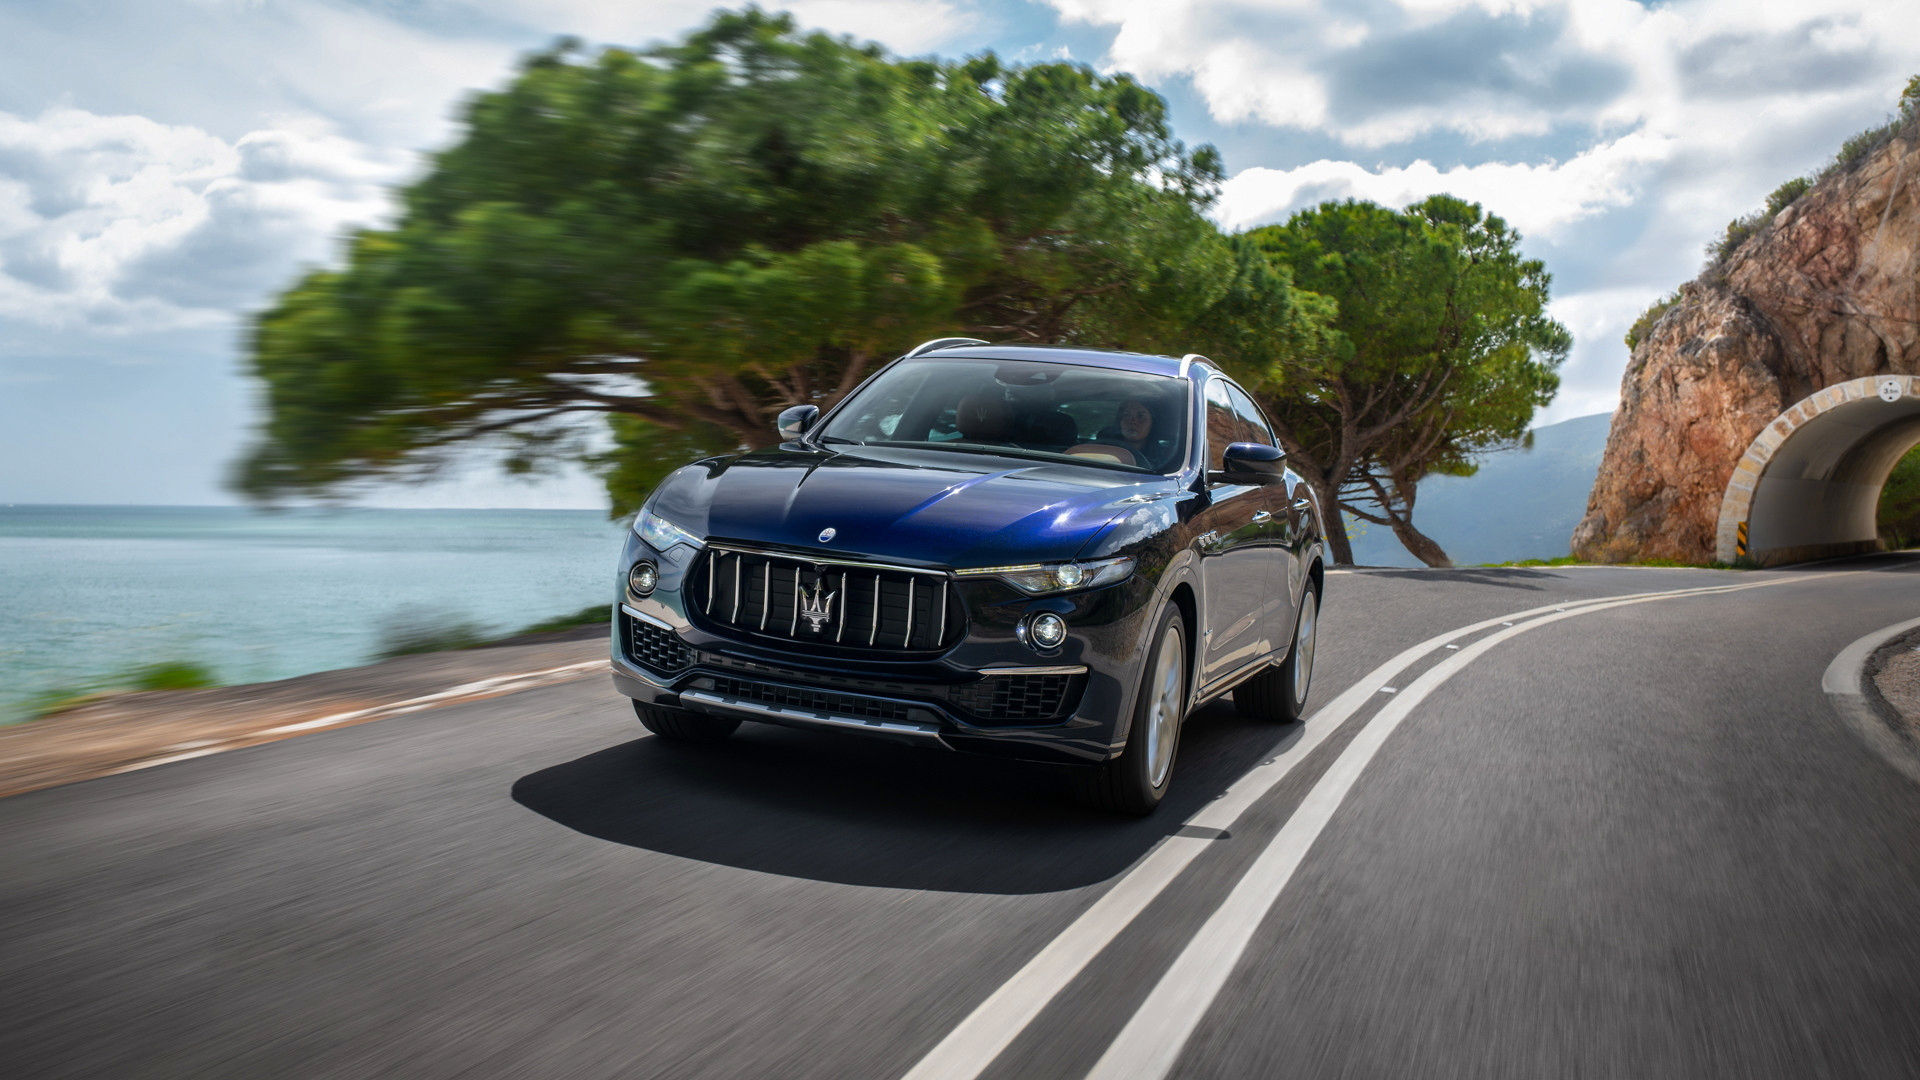 The luxury SUV Maserati Levante 2019 on the road - front view